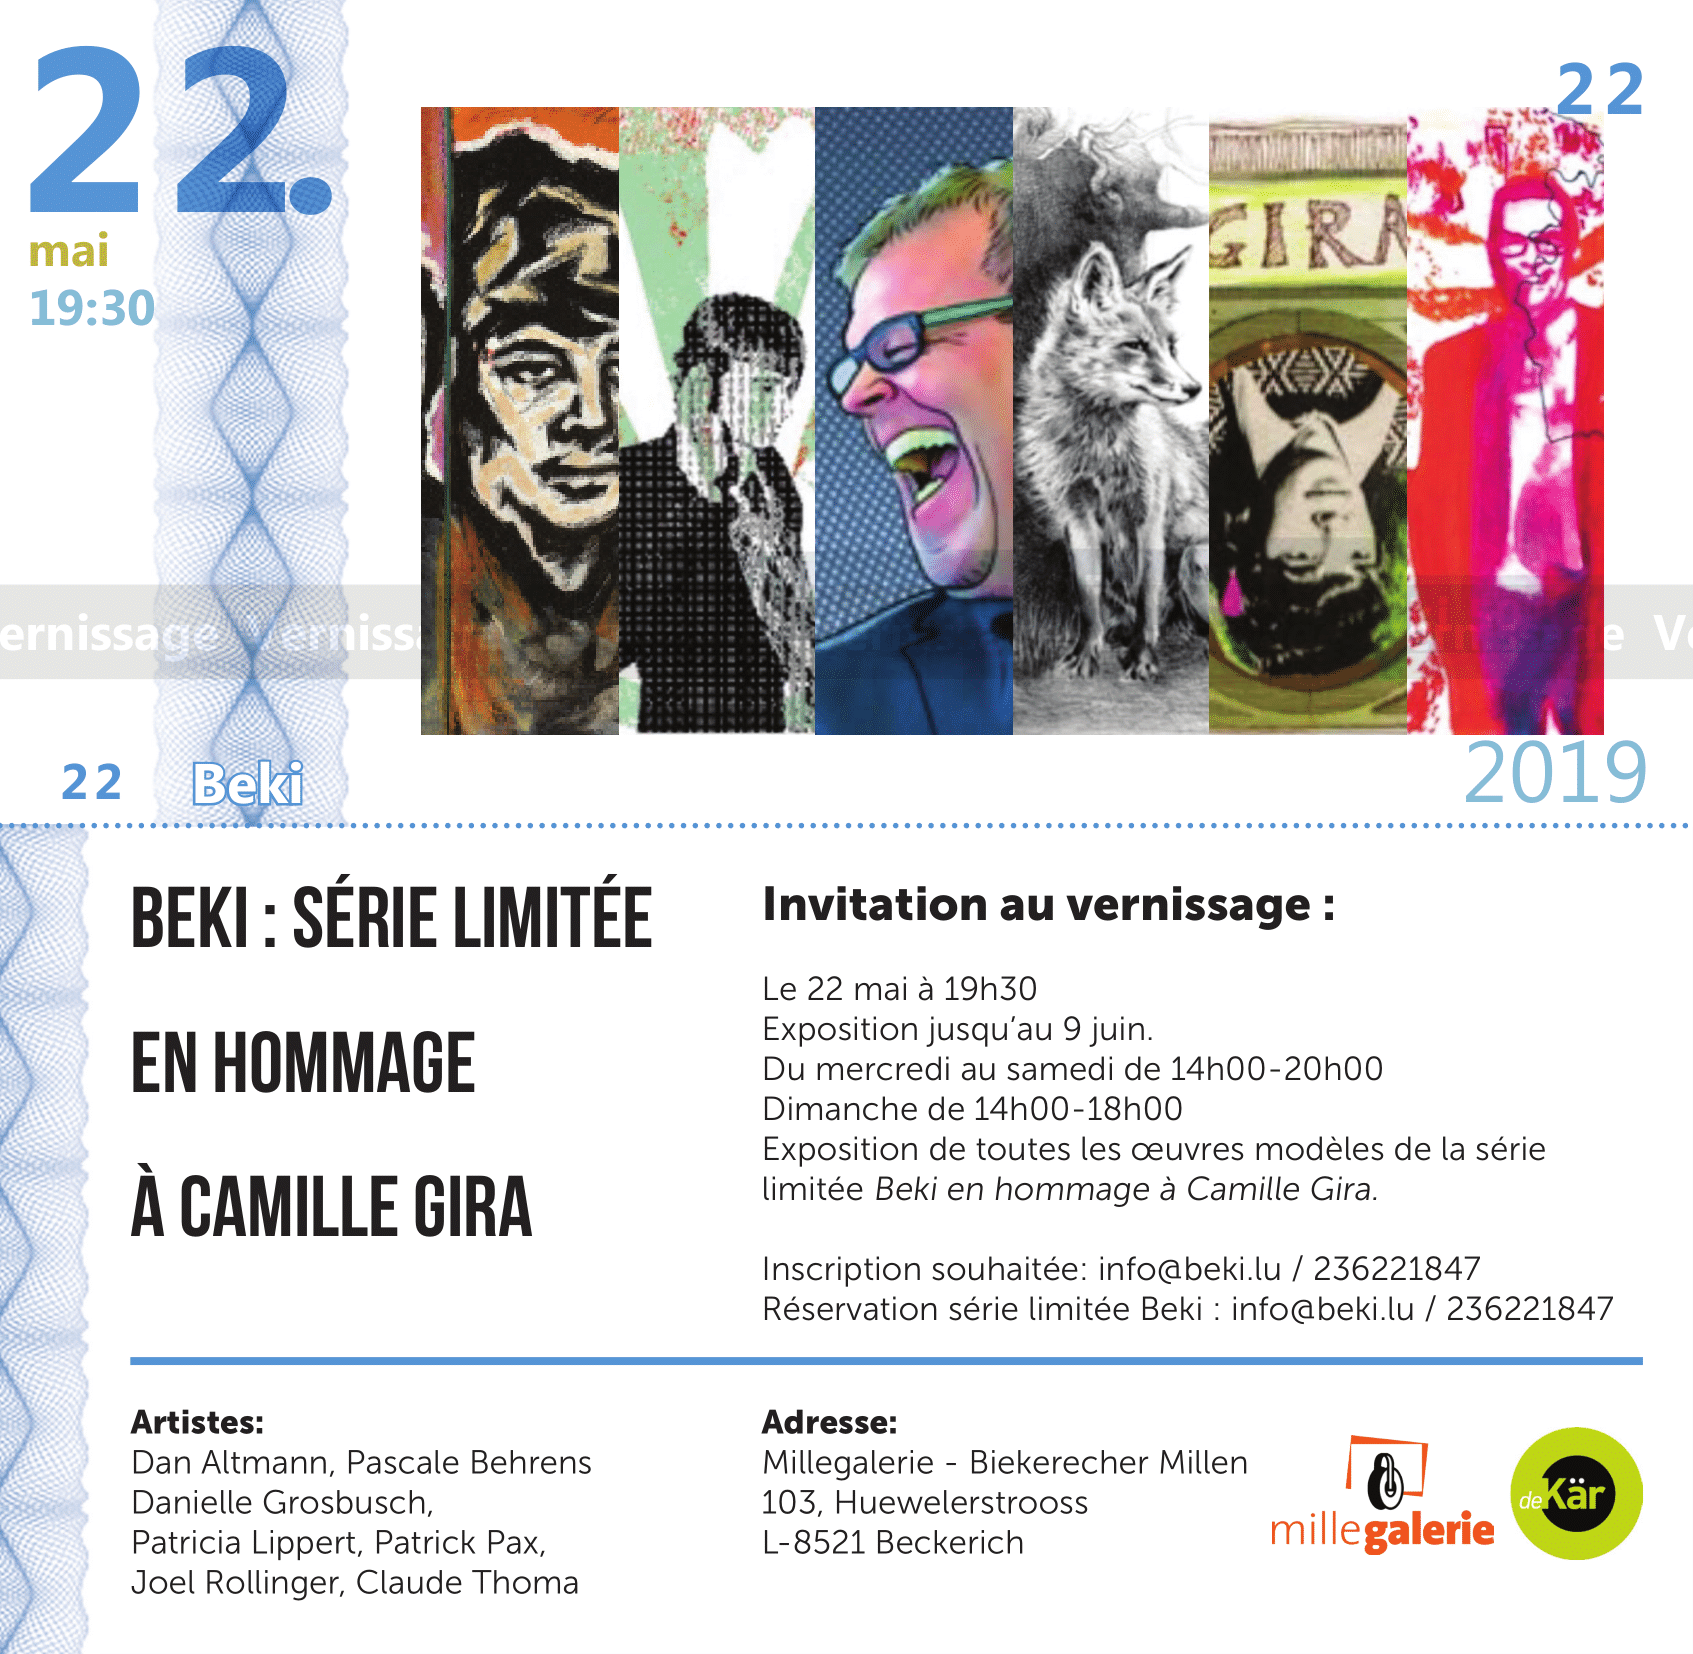 Invitation_Vernissage_Beki_Camille_Gira-1.png